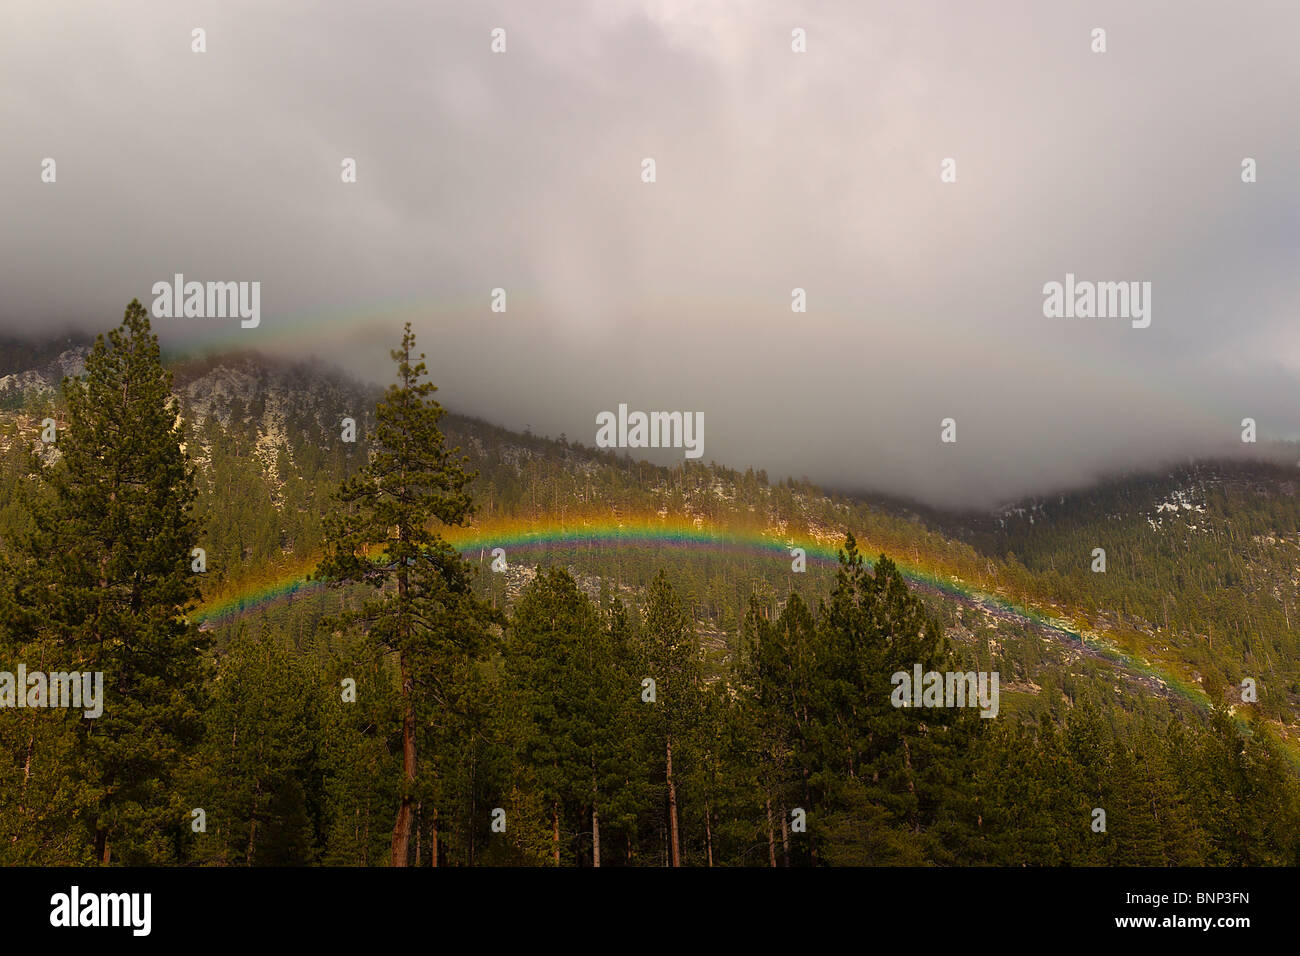 Rainbow appears over trees as rain shower passes through the north end of Lake Tahoe, Nevada, USA. - Stock Image